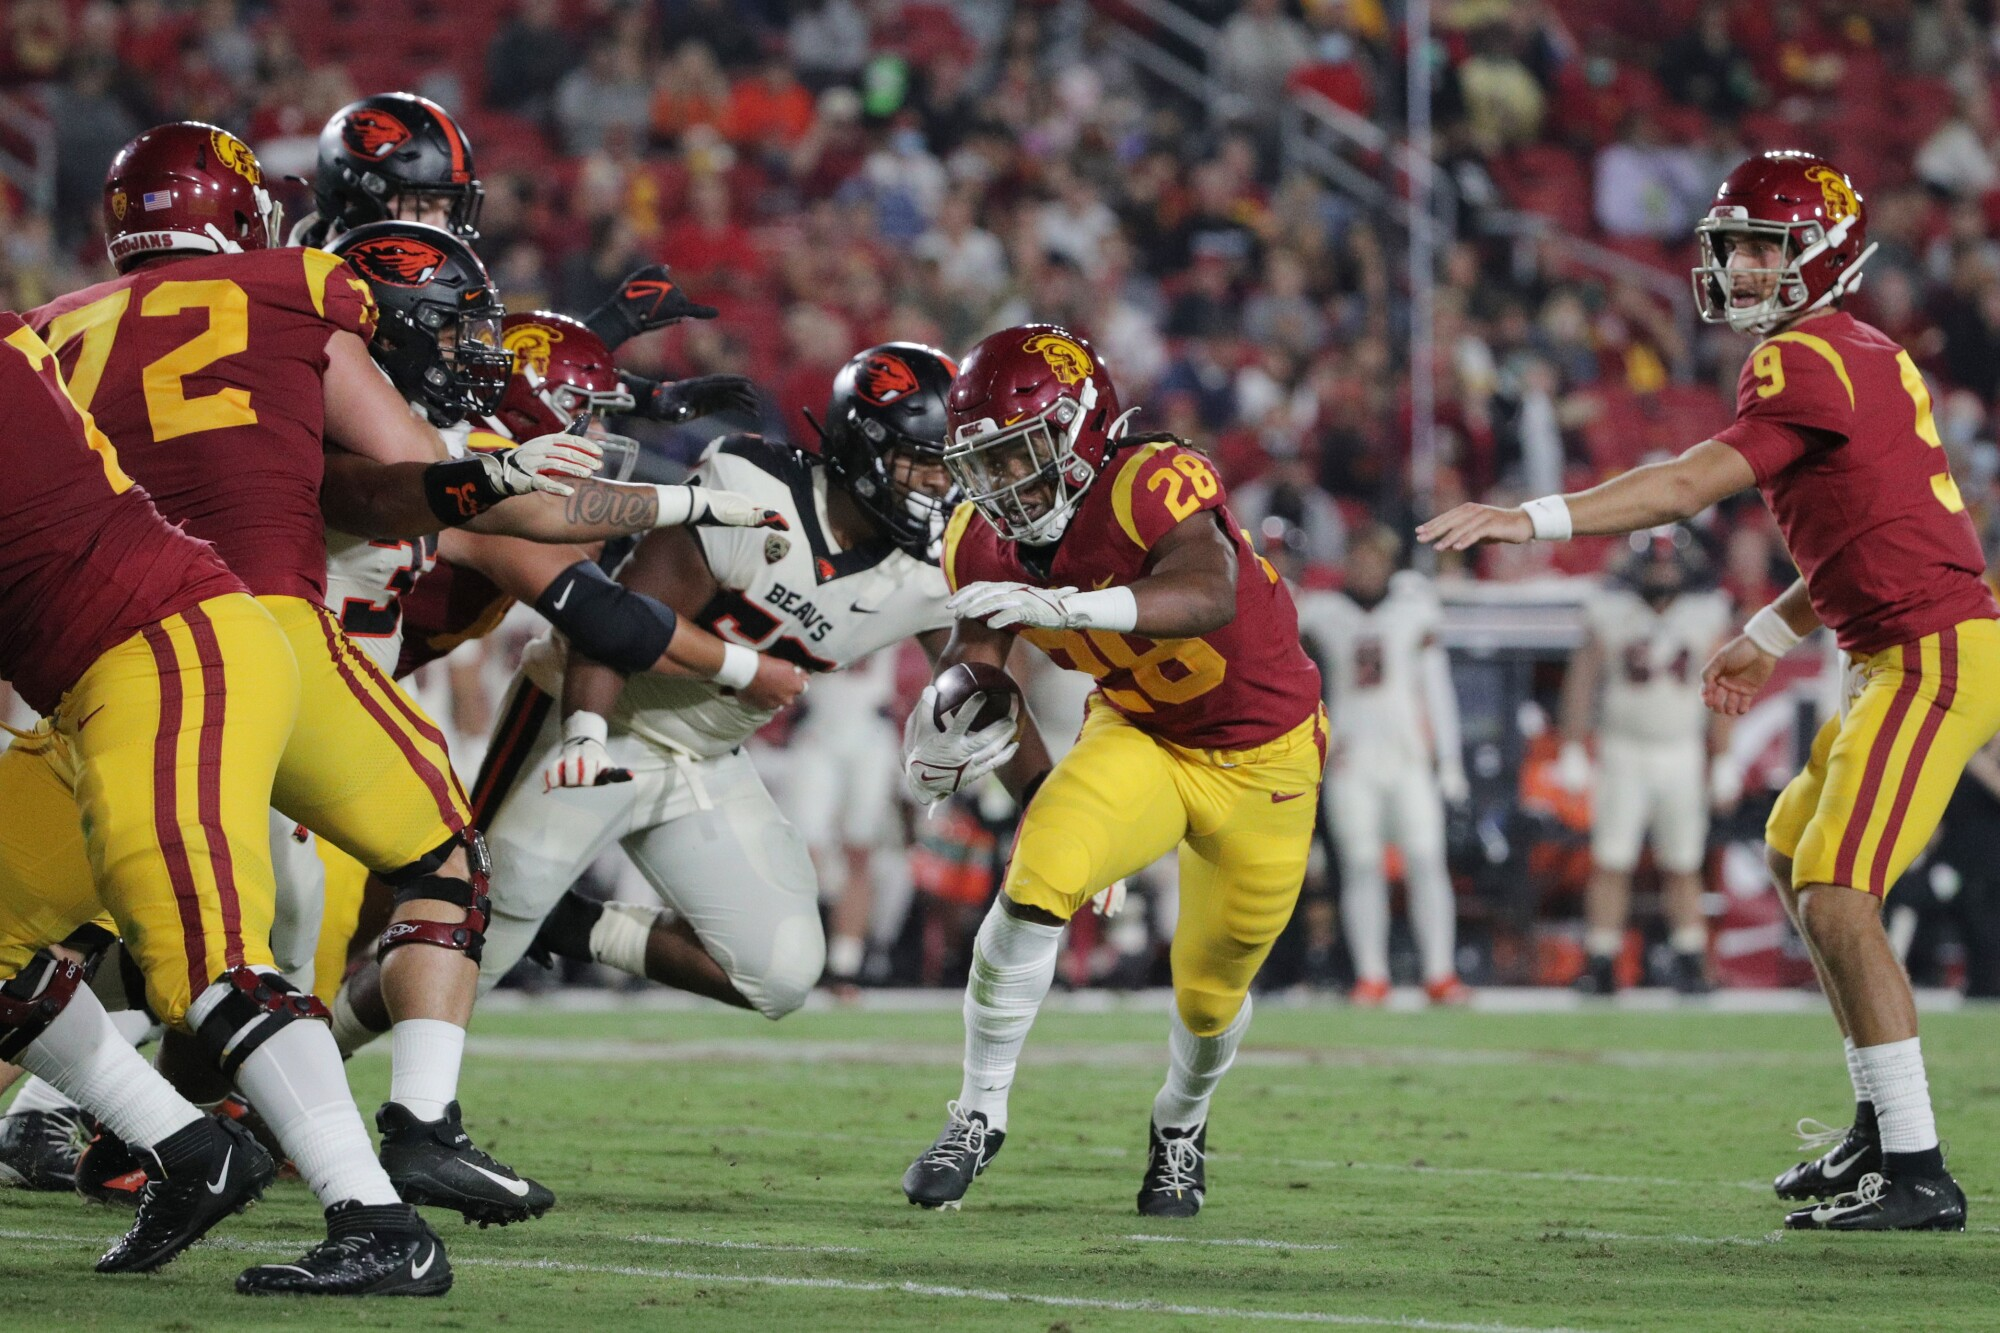 USC running back Keaontay Ingram eludes the Oregon State defense to score a first-half touchdown.